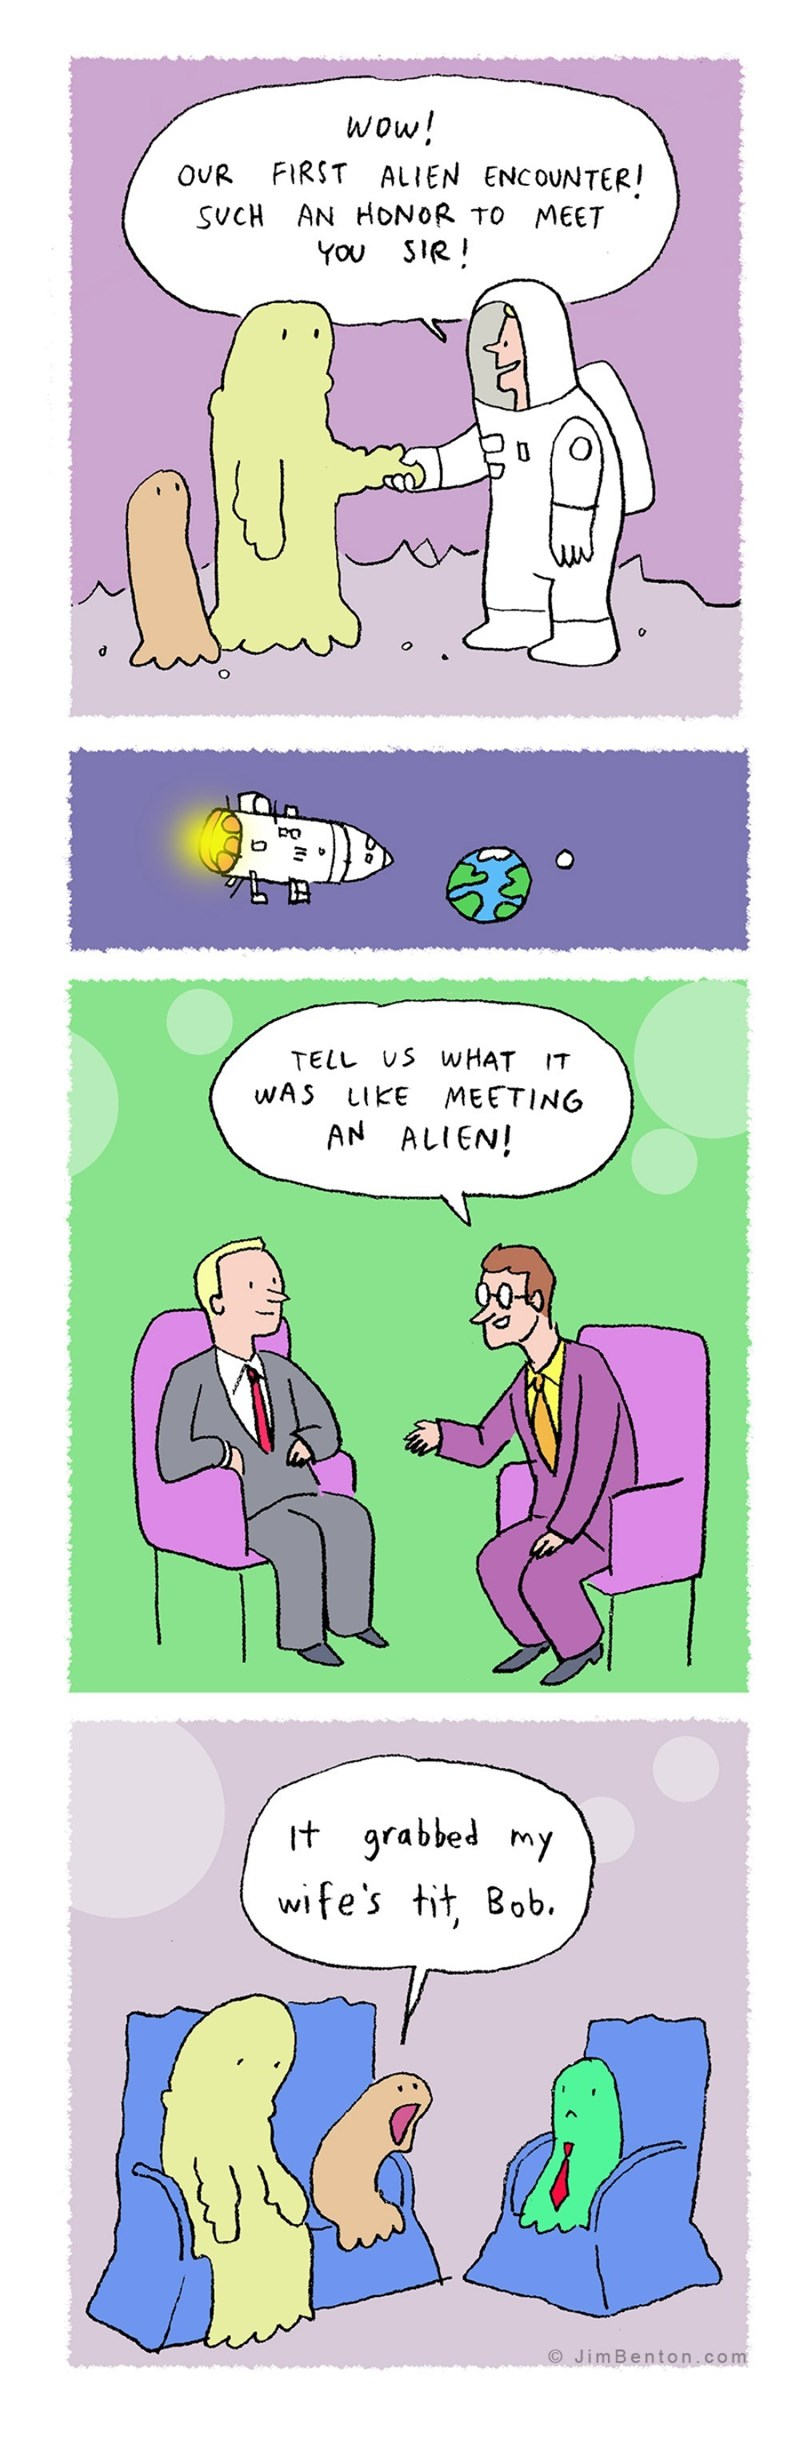 Cartoon - wow! FIRST ALIEN ENCOUNTER! SUCH AN HONOR TO MEET YOU SIR! OUR TELL US W HAT WAS LIKE MEETING IT AN ALIEN! It grabbed my wife's tit, Bob. O JimBenton.com